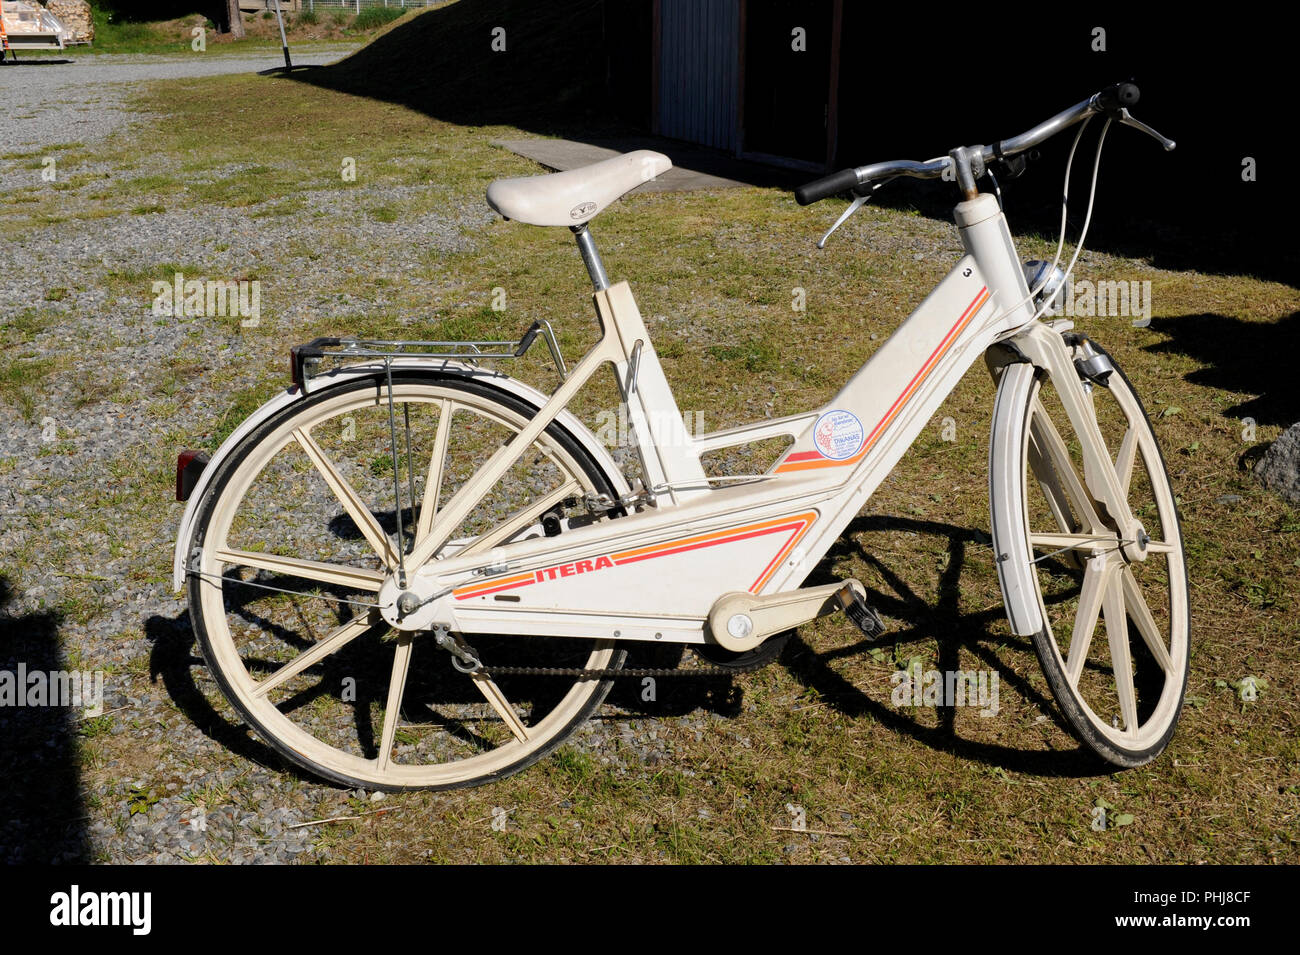 The Plastic bicycle. The Itera Plastic Bicycle, a 1980s Swedish attempt to modernize the bicycle by replacing metal with injection moulded plastic composite materials. The project ended in technical and commercial failure after three years. The production was made at a plastic factory in Vilhelmina Sweden. Production ended in 1985. - Stock Image